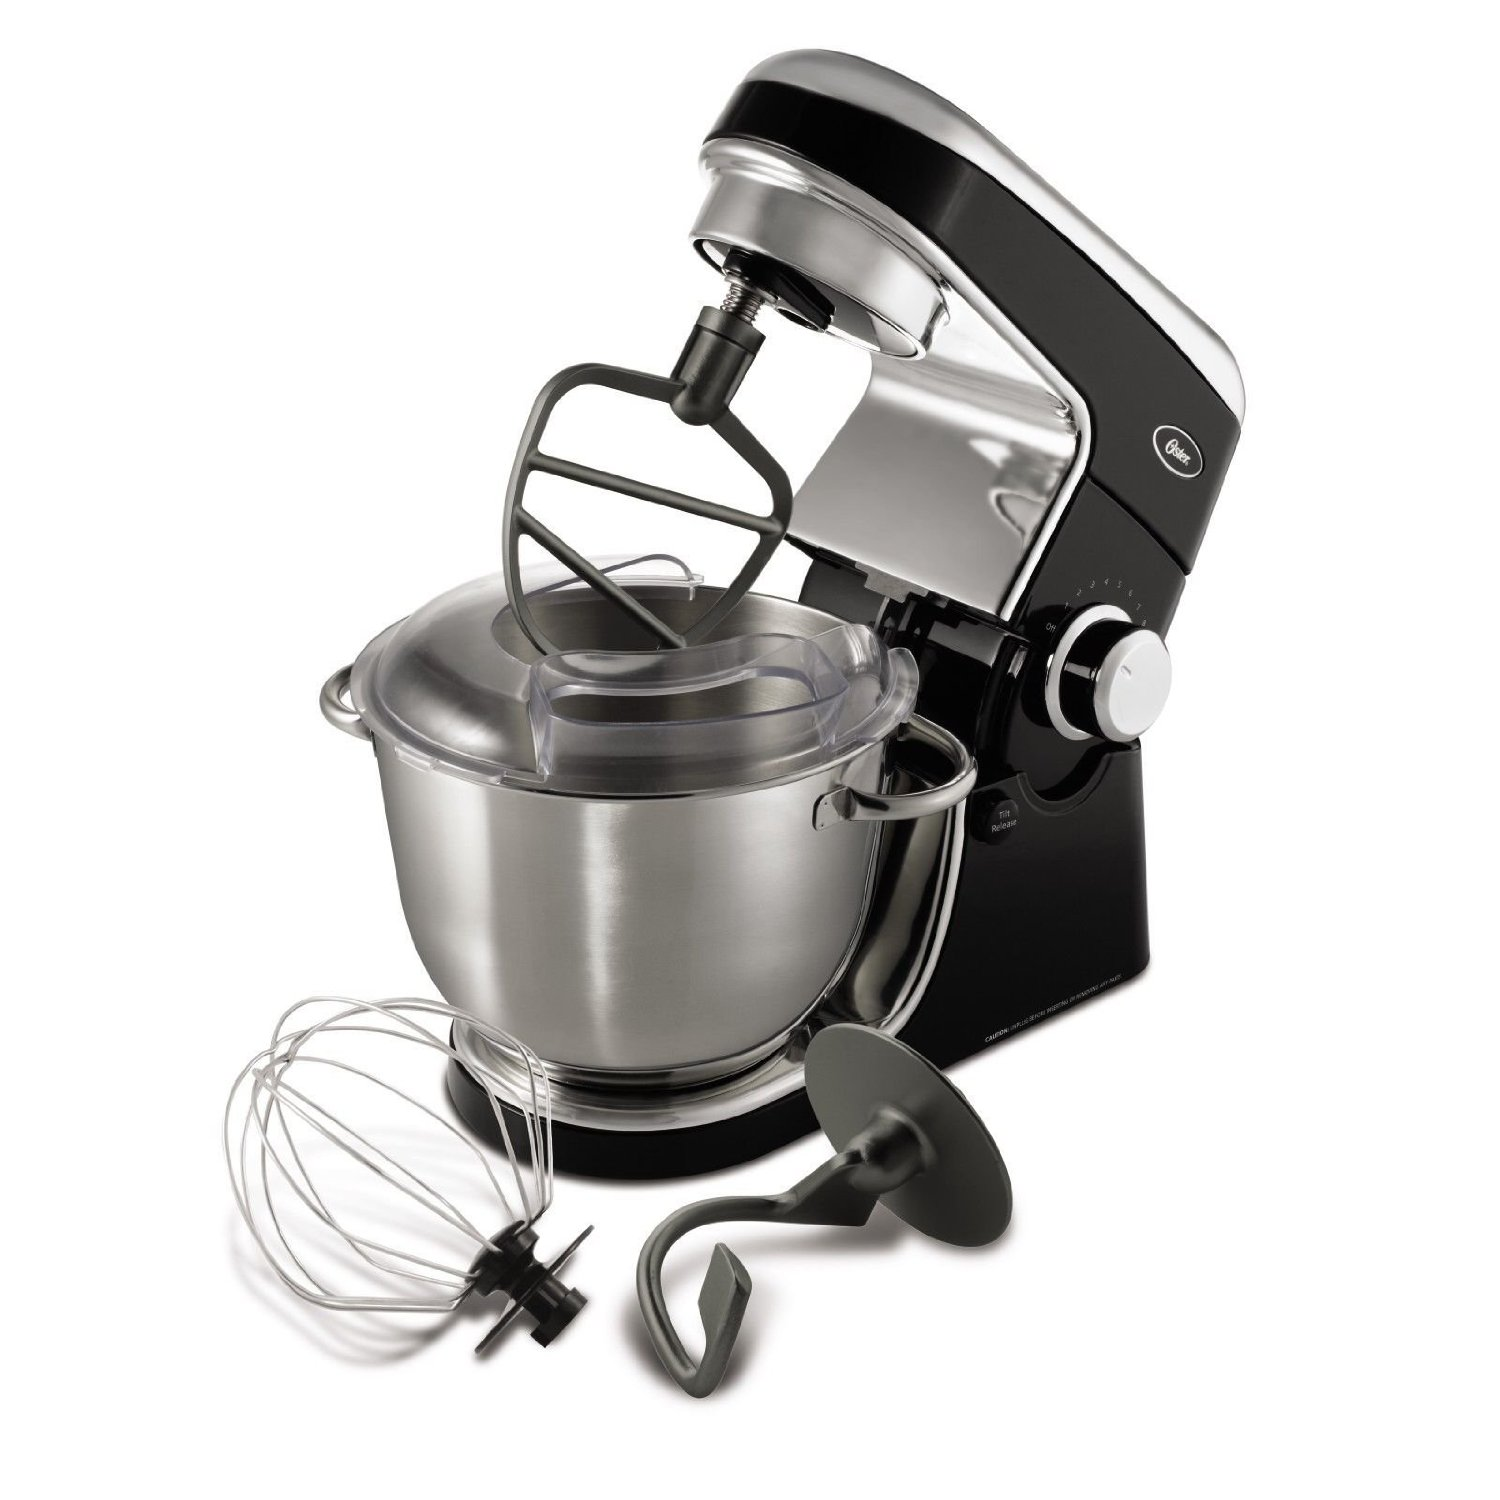 Osterstandmixer Kitchen Tools Amp Small Appliance Reviews